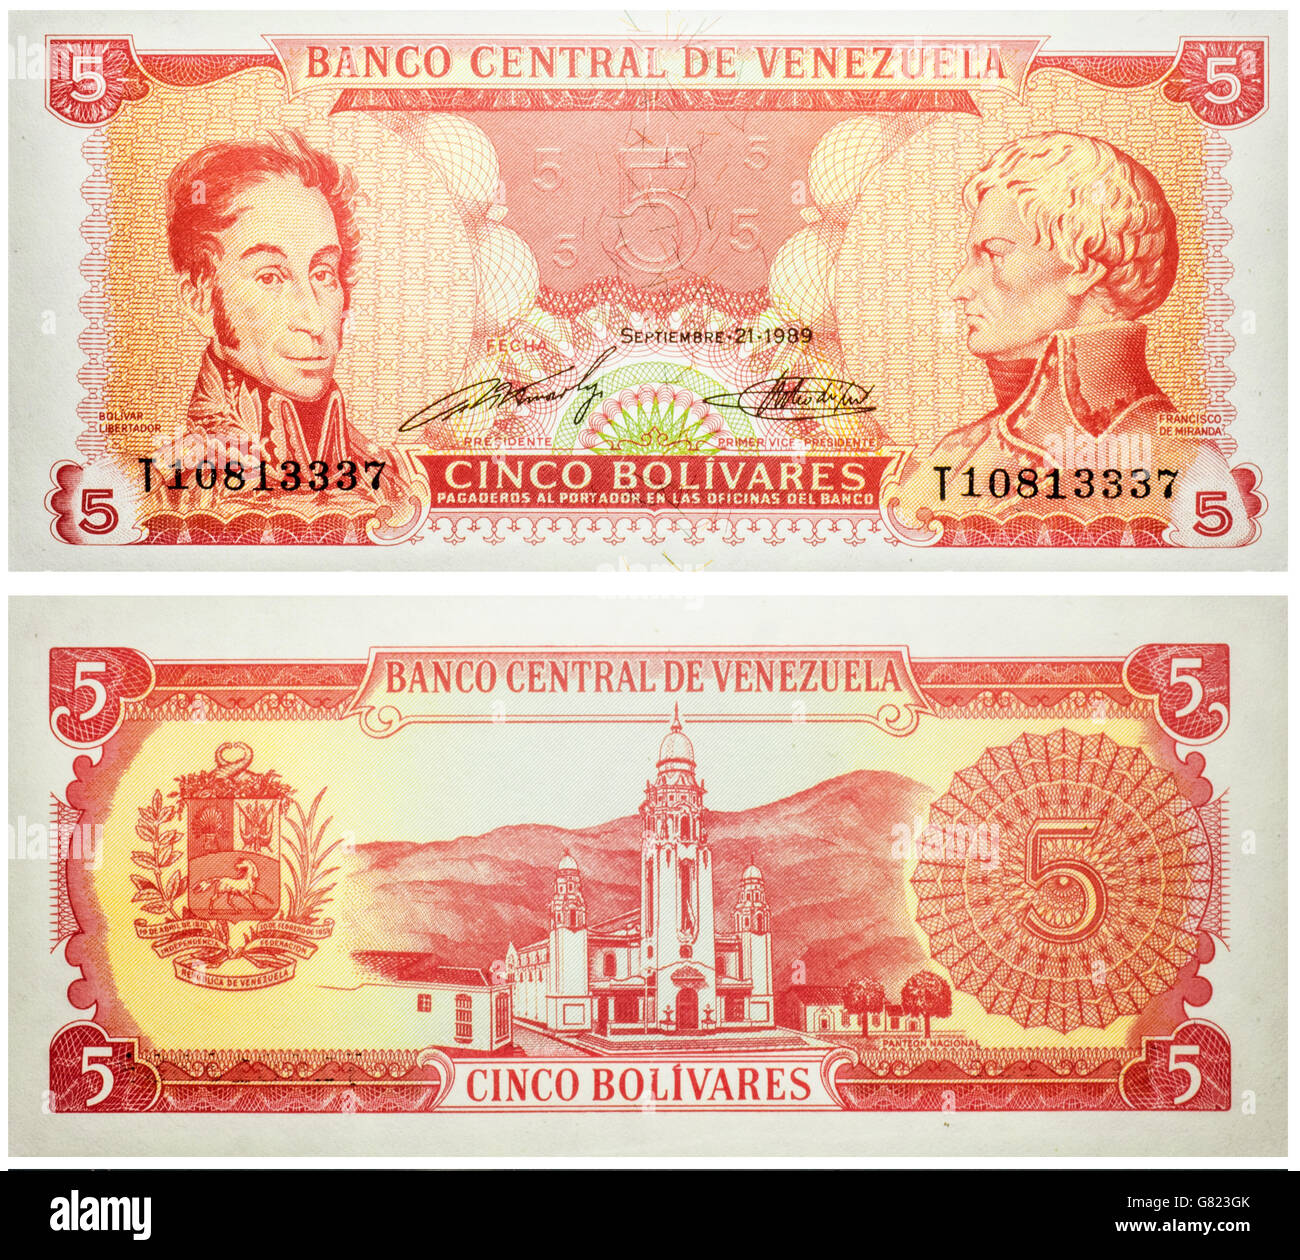 Banknote 5 Bolivares Venezuela isolated on white emitted on 1989. On front Simon Bolivar at left, Francisco de Miranda - Stock Image